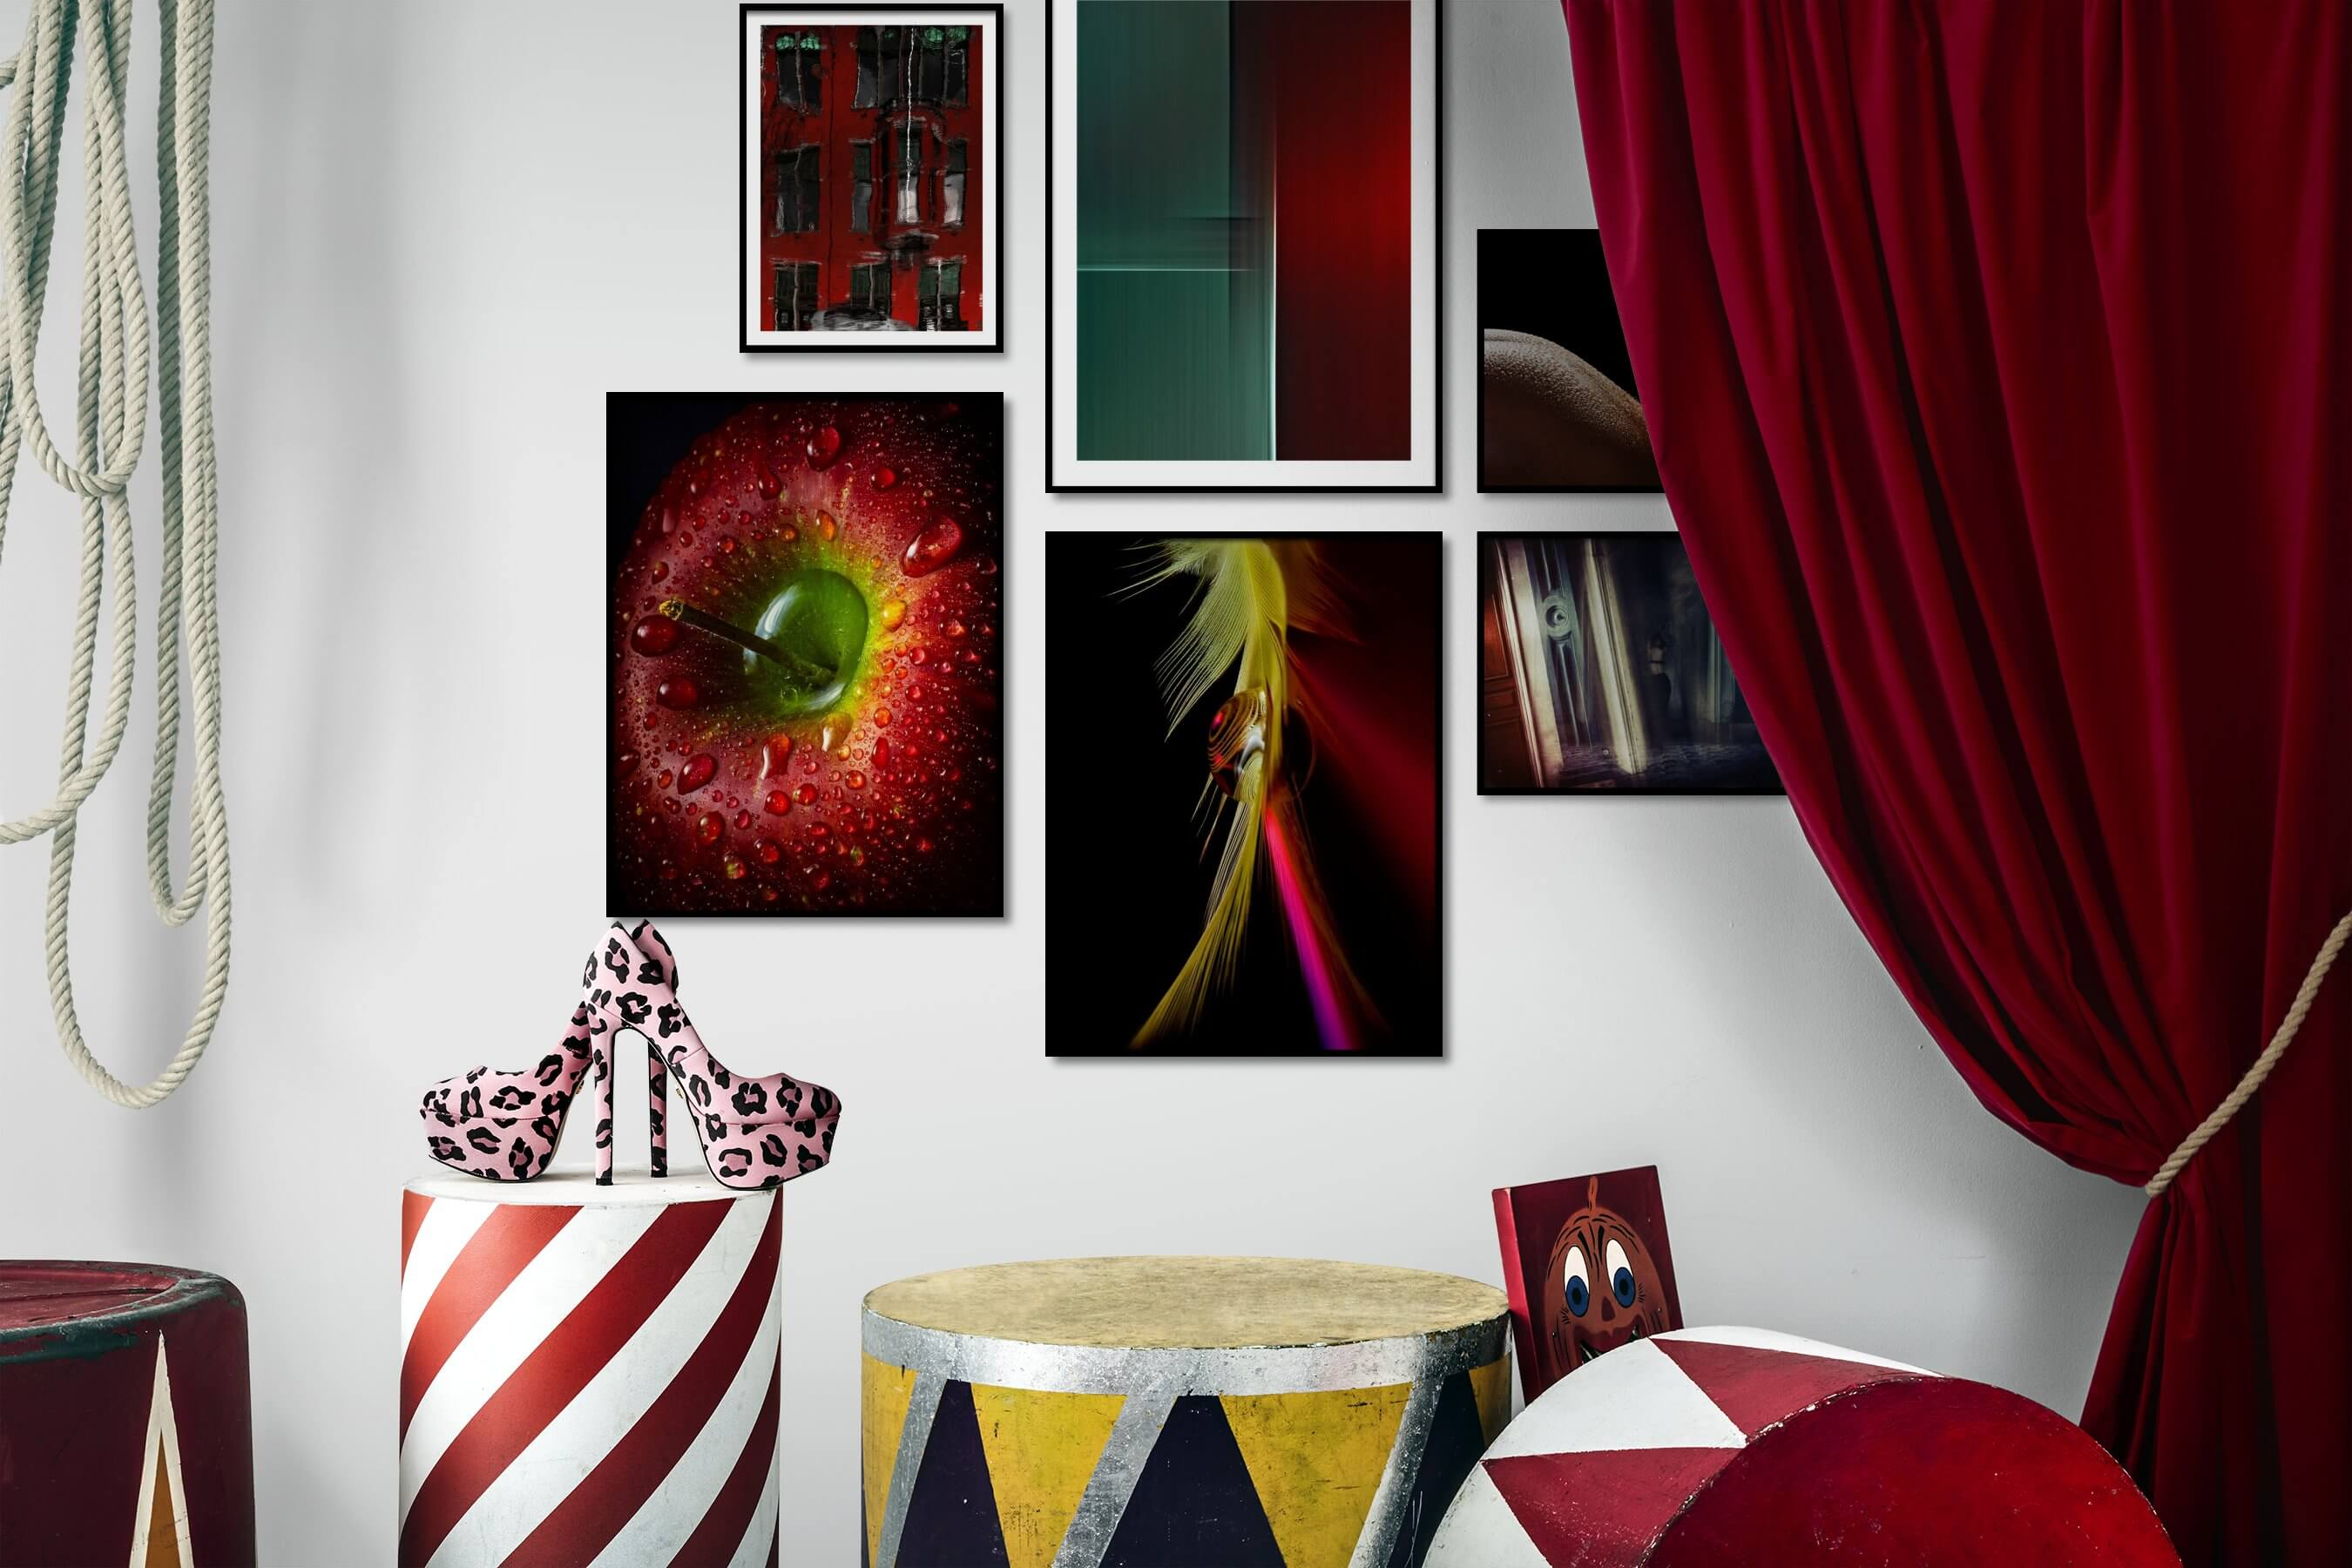 Gallery wall idea with six framed pictures arranged on a wall depicting For the Maximalist, City Life, For the Minimalist, For the Moderate, Flowers & Plants, and Fashion & Beauty